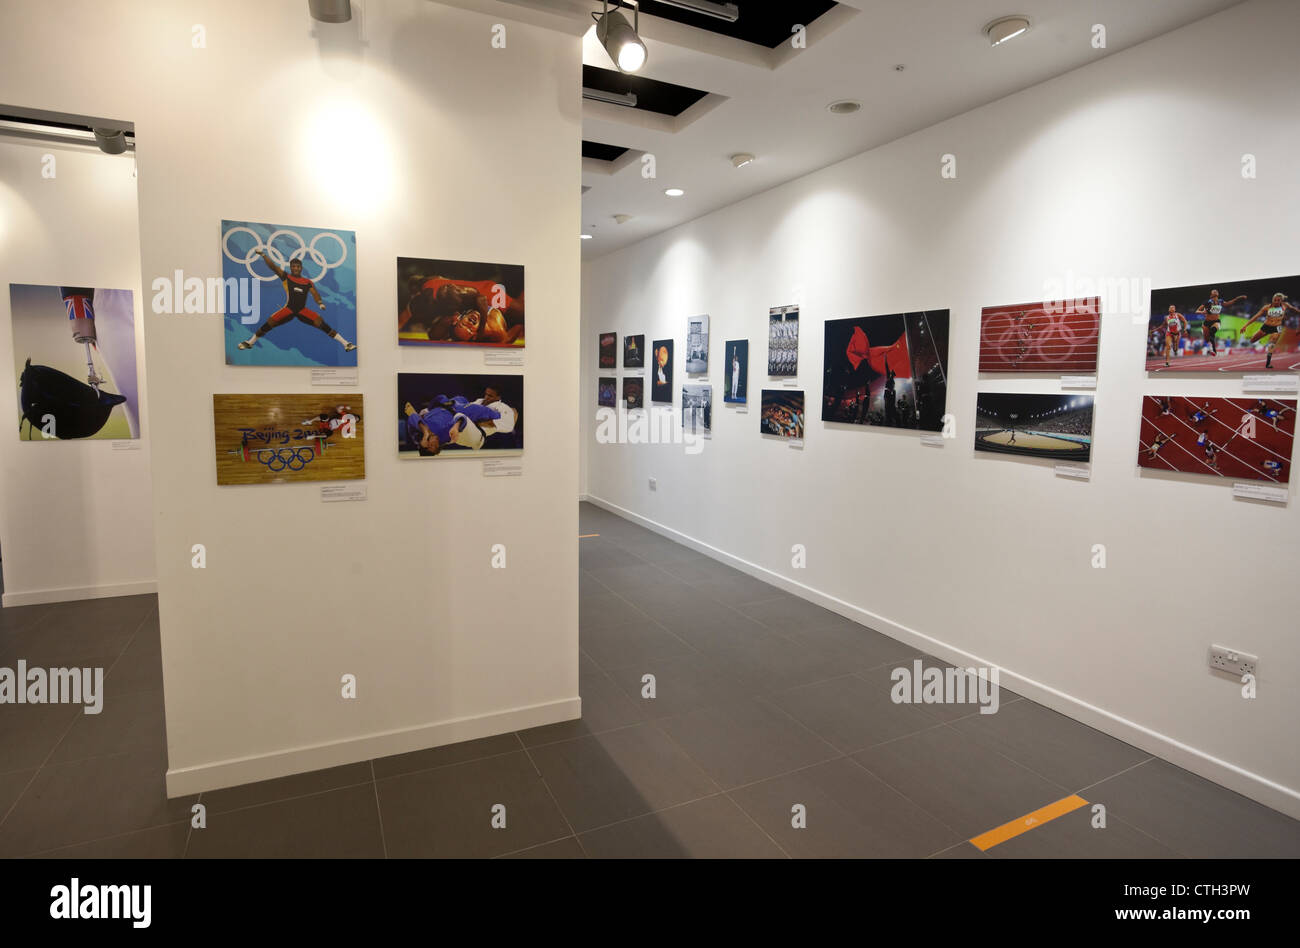 Getty Images Gallery, Olympic Games Through The Ages photography exhibition, Westfield Stratford City, London, England, - Stock Image